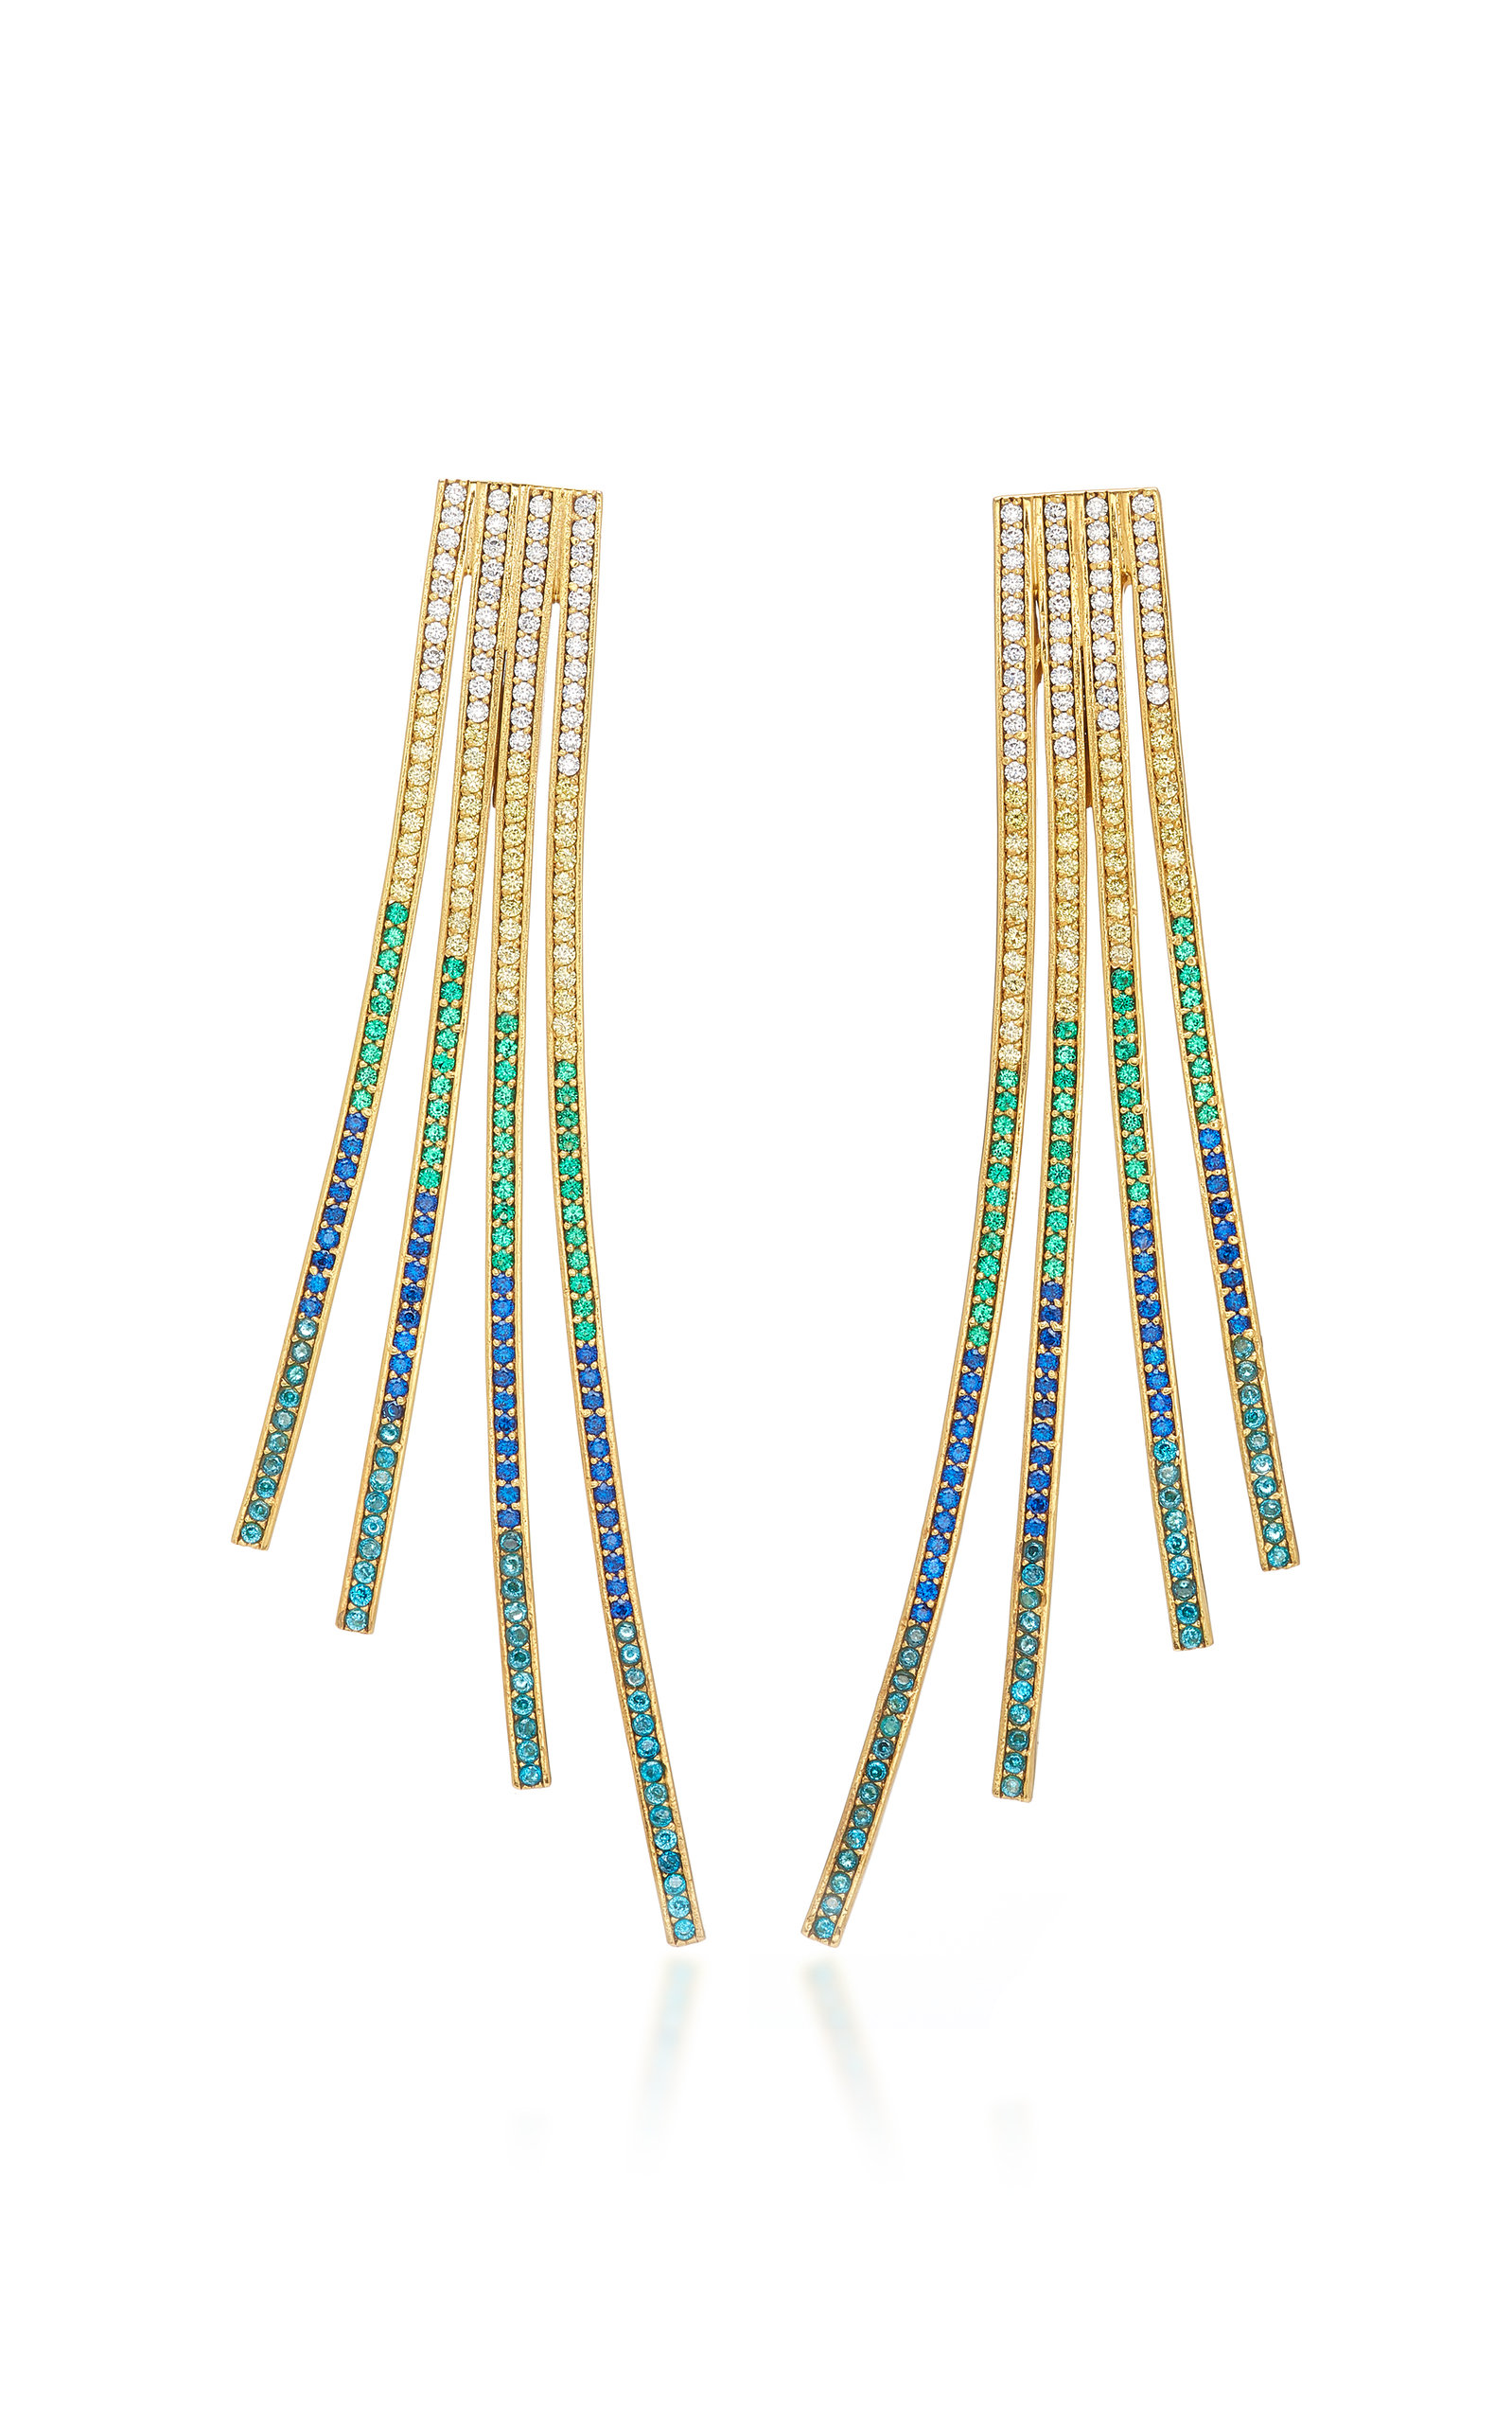 JOANNA LAURA CONSTANTINE CRISS-CROSS RAINBOW GOLD-PLATED BRASS AND CUBIC ZIRCONIA STATEMENT EARRINGS